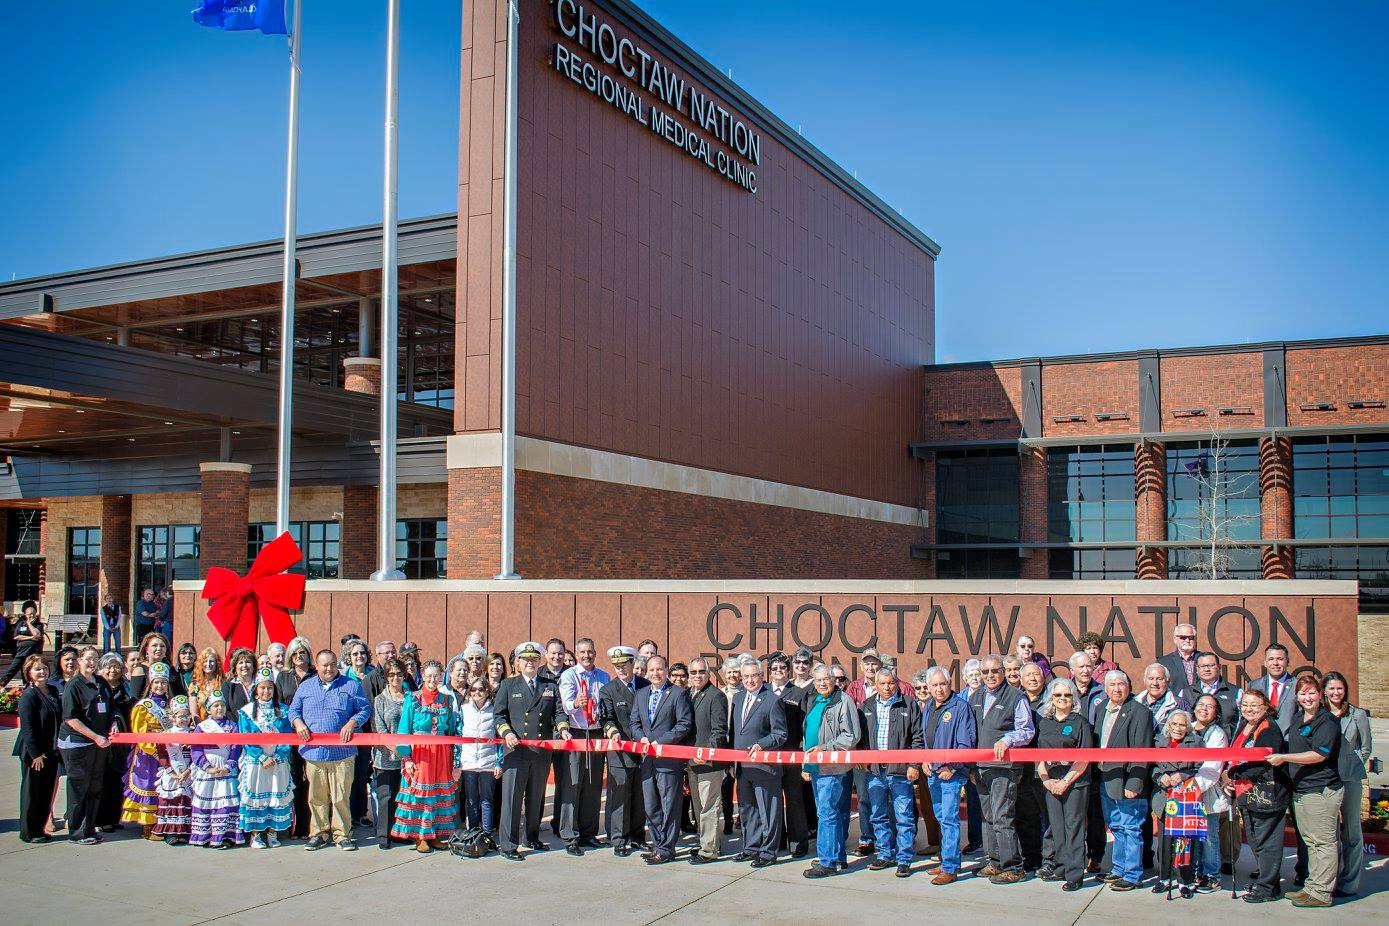 Choctaw Nation on a development boom with dozens of projects